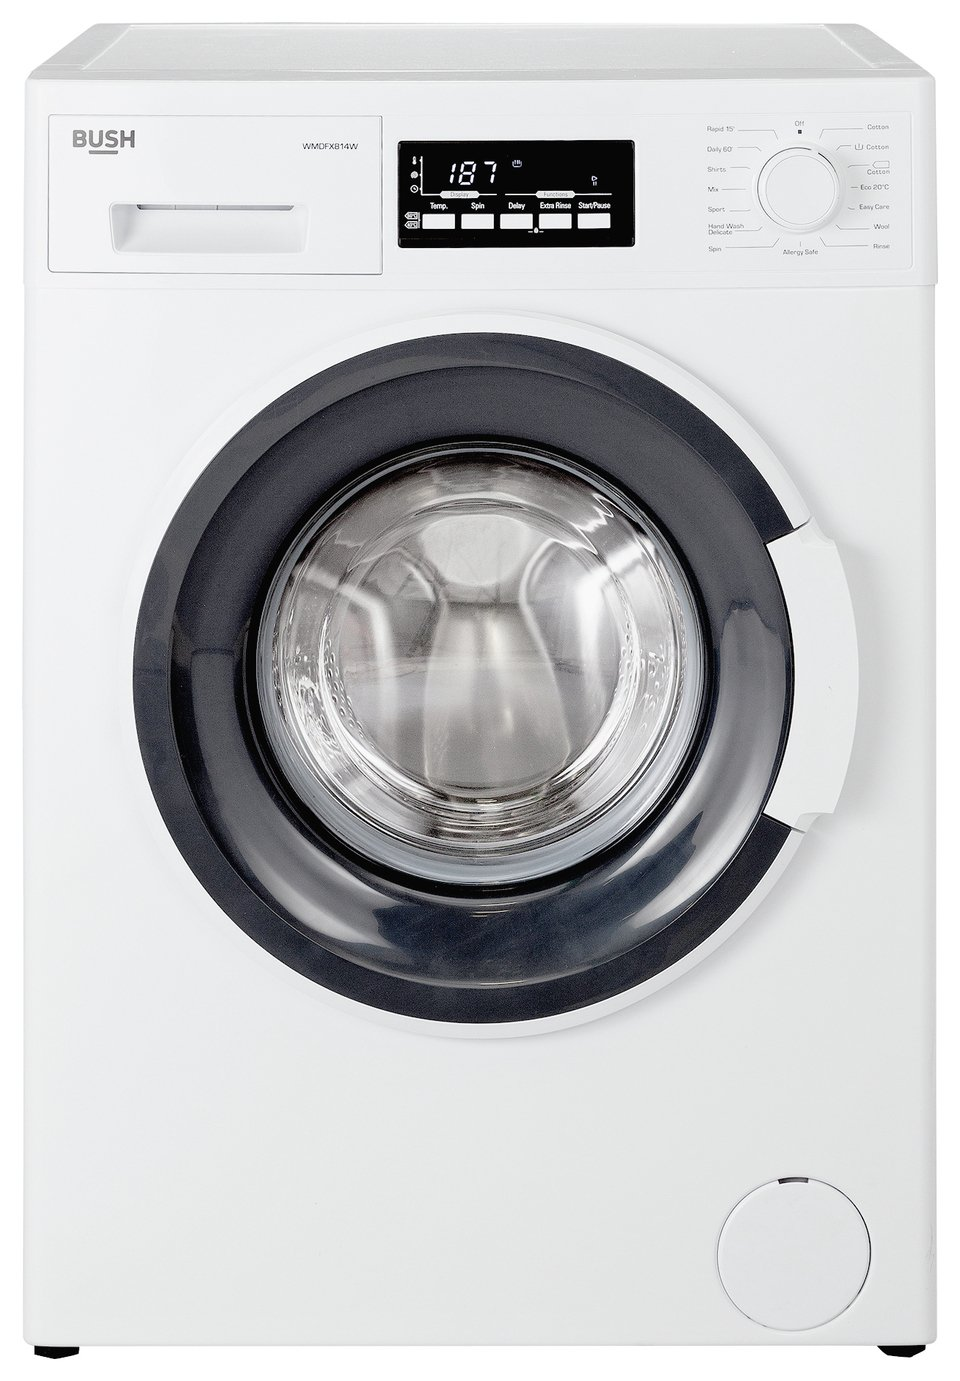 Image of Bush WMDFX814W 8KG Washing Machine - White + Installation